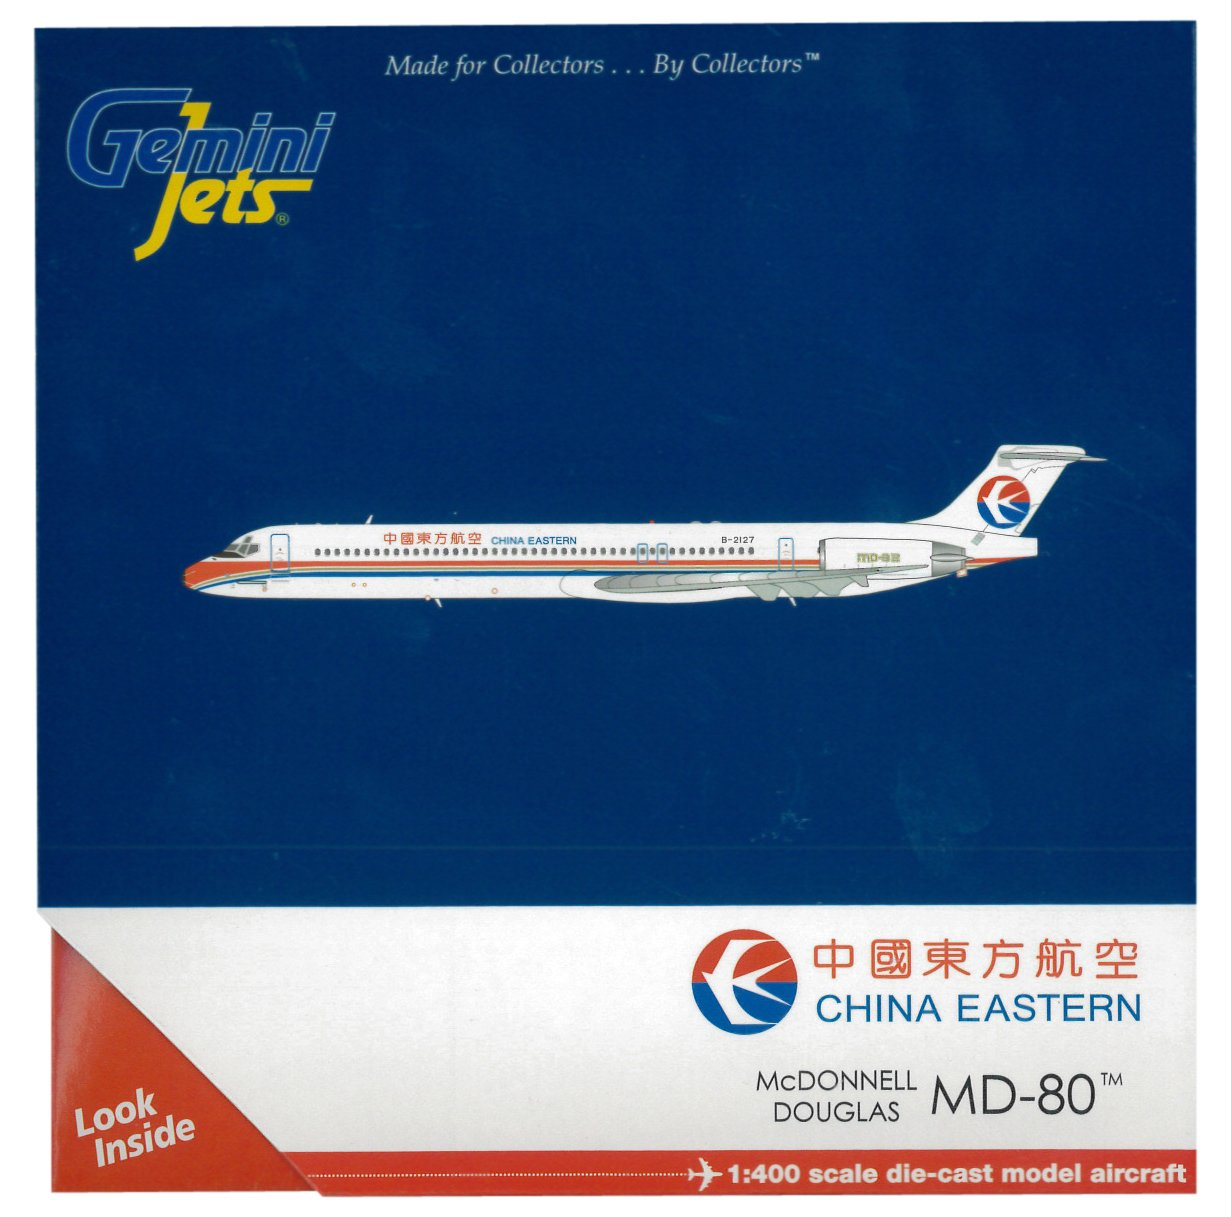 GeminiJets China Eastern MD-80 Diecast Aircraft 1:400 Scale